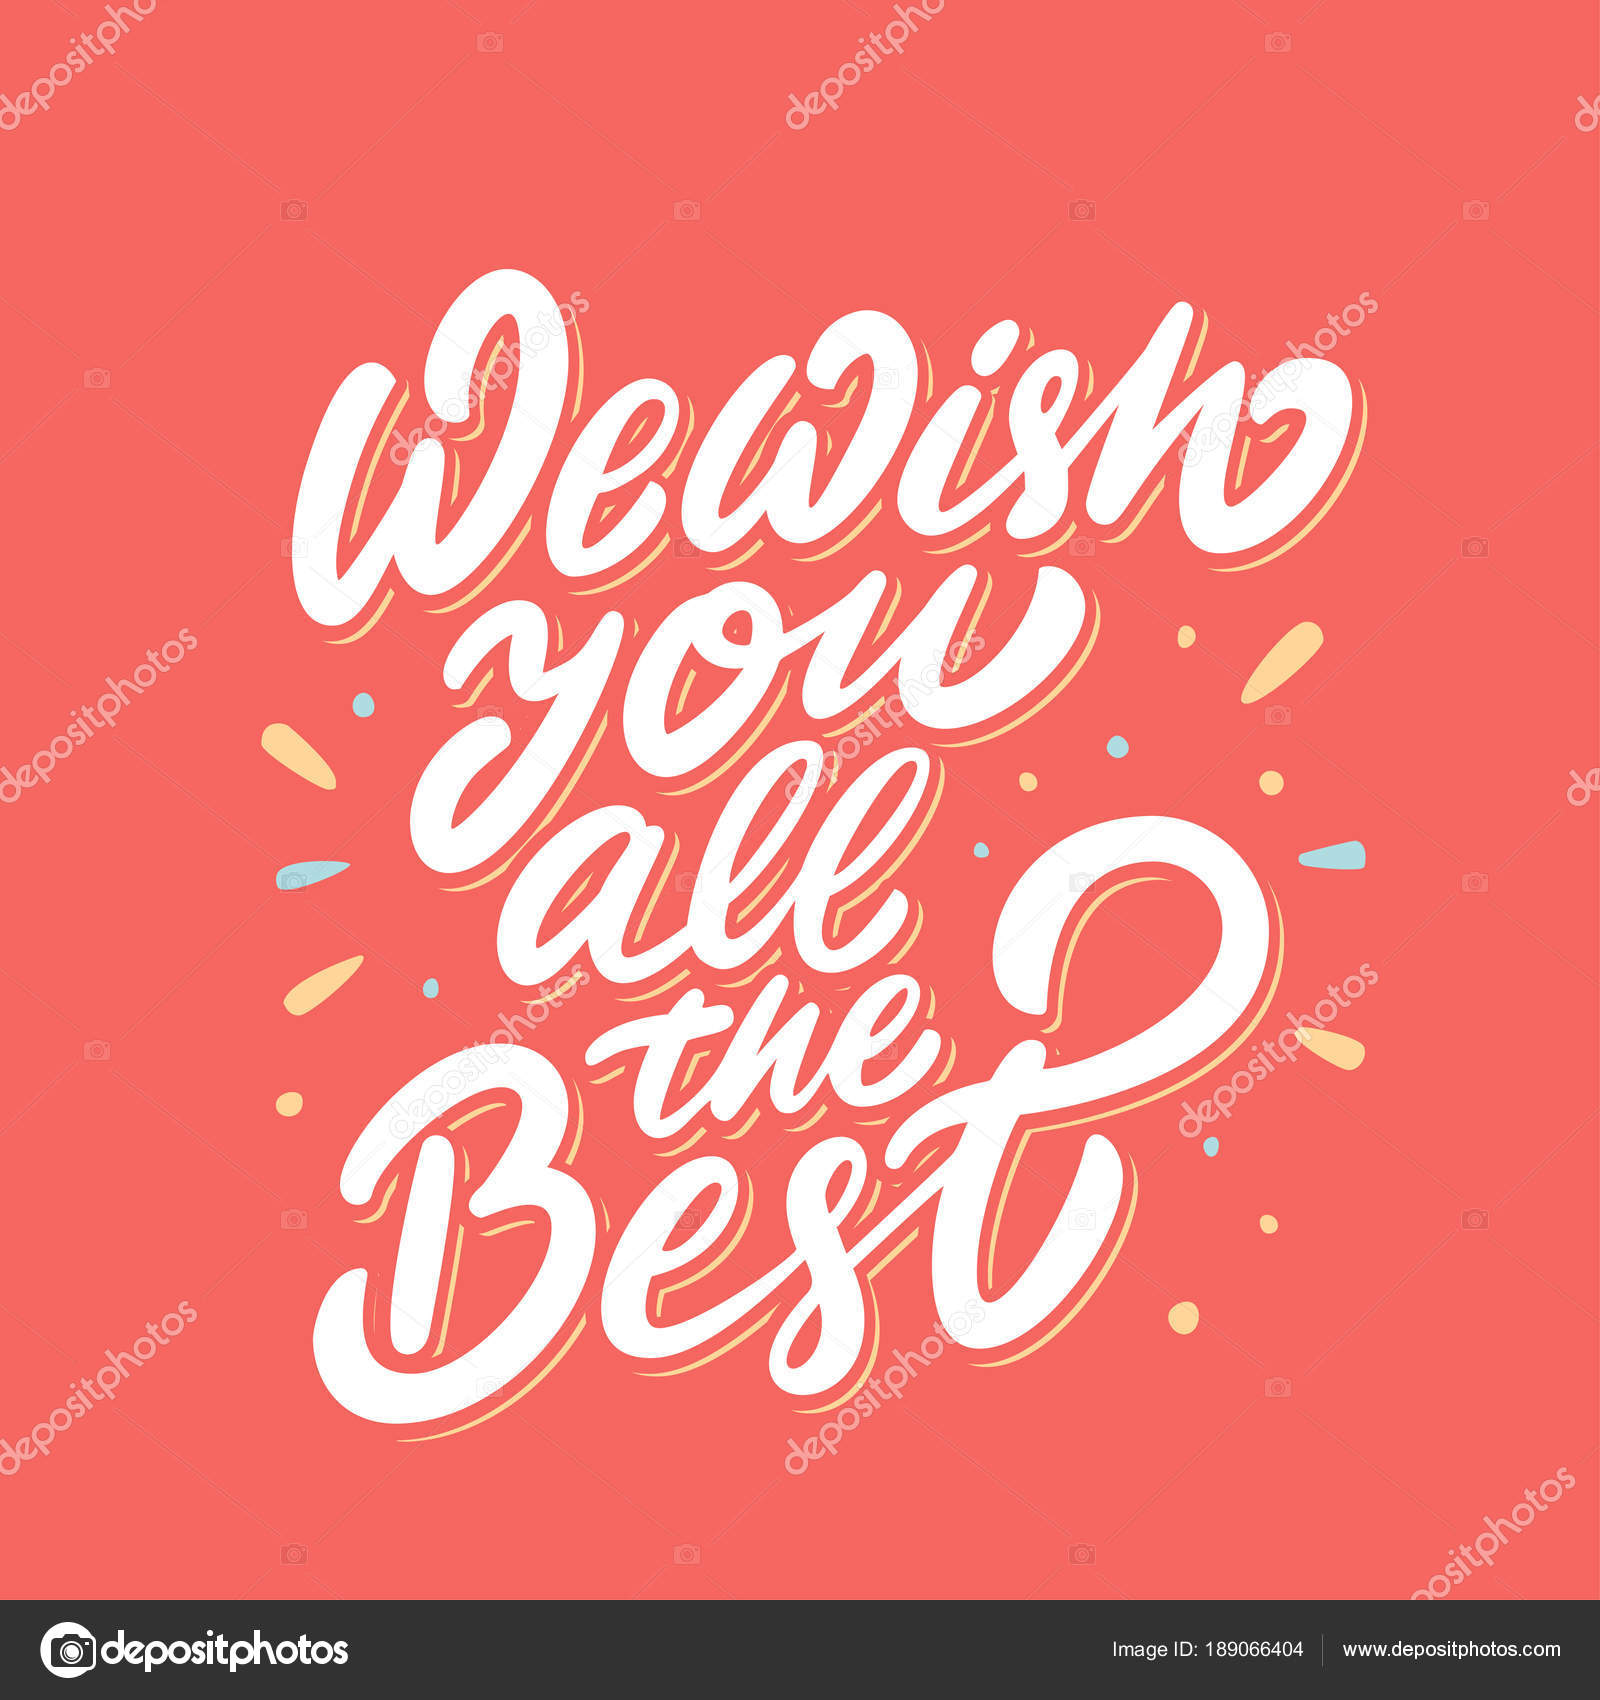 we wish you all the best stock vector